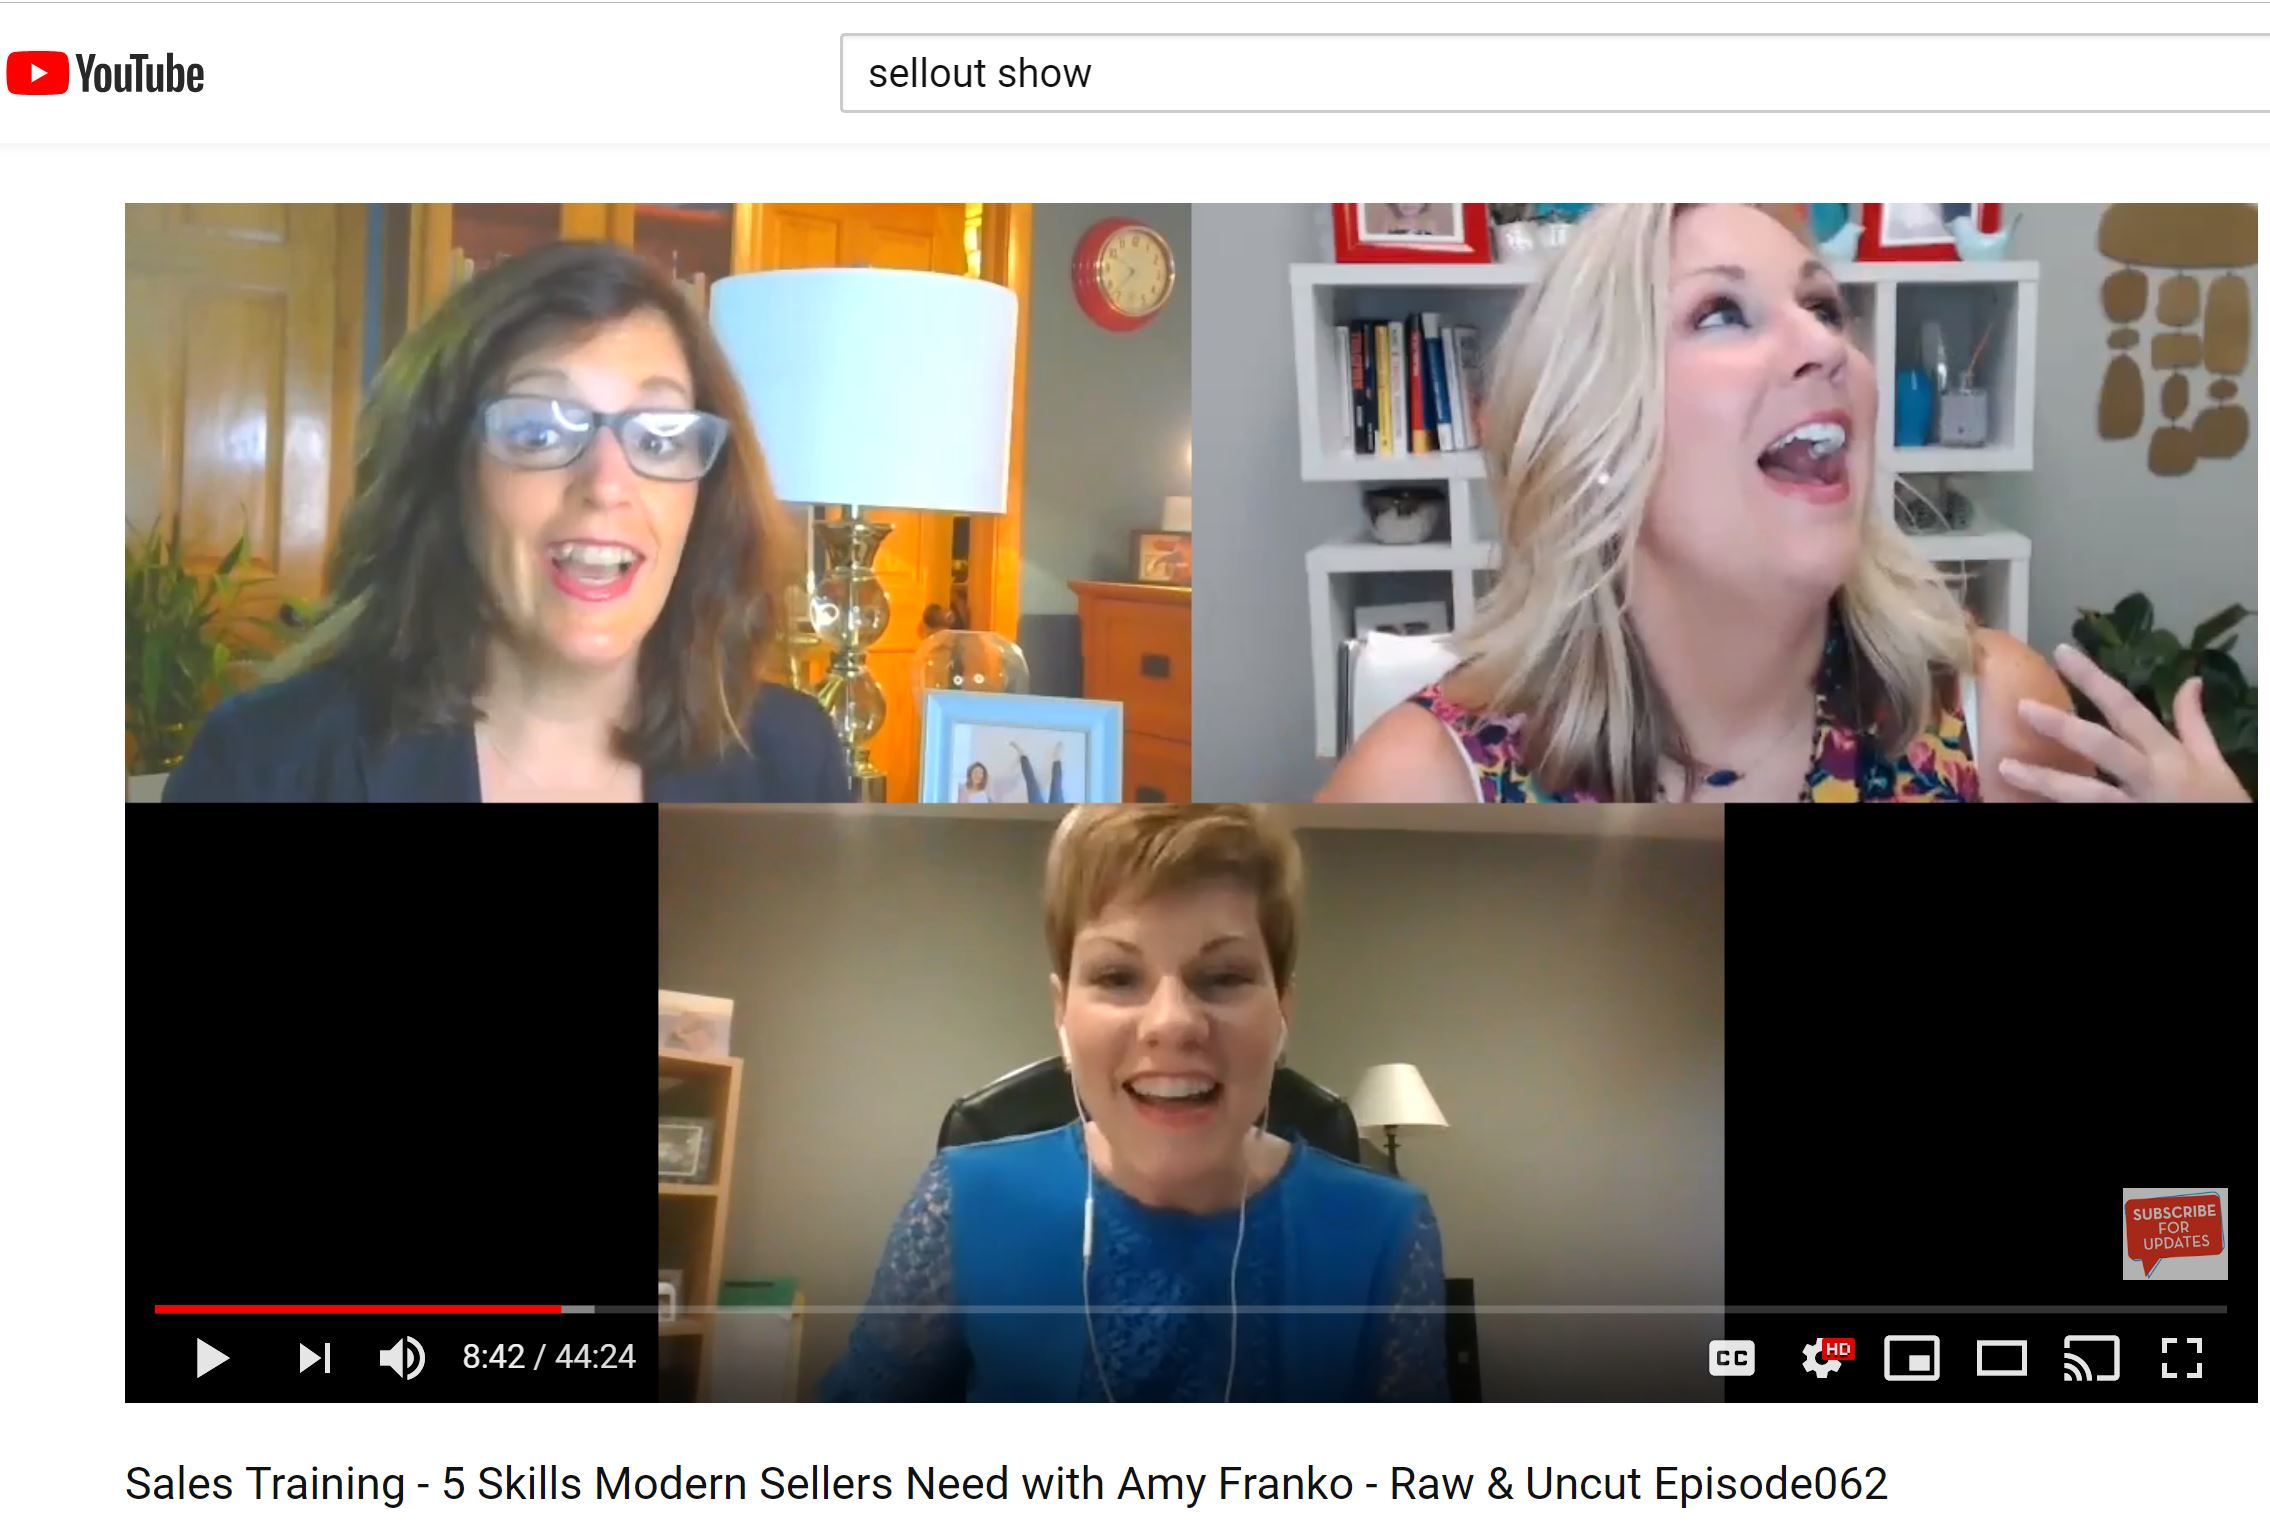 SellOut Show - 5 Skills Modern Sellers Need with guest Amy Franko